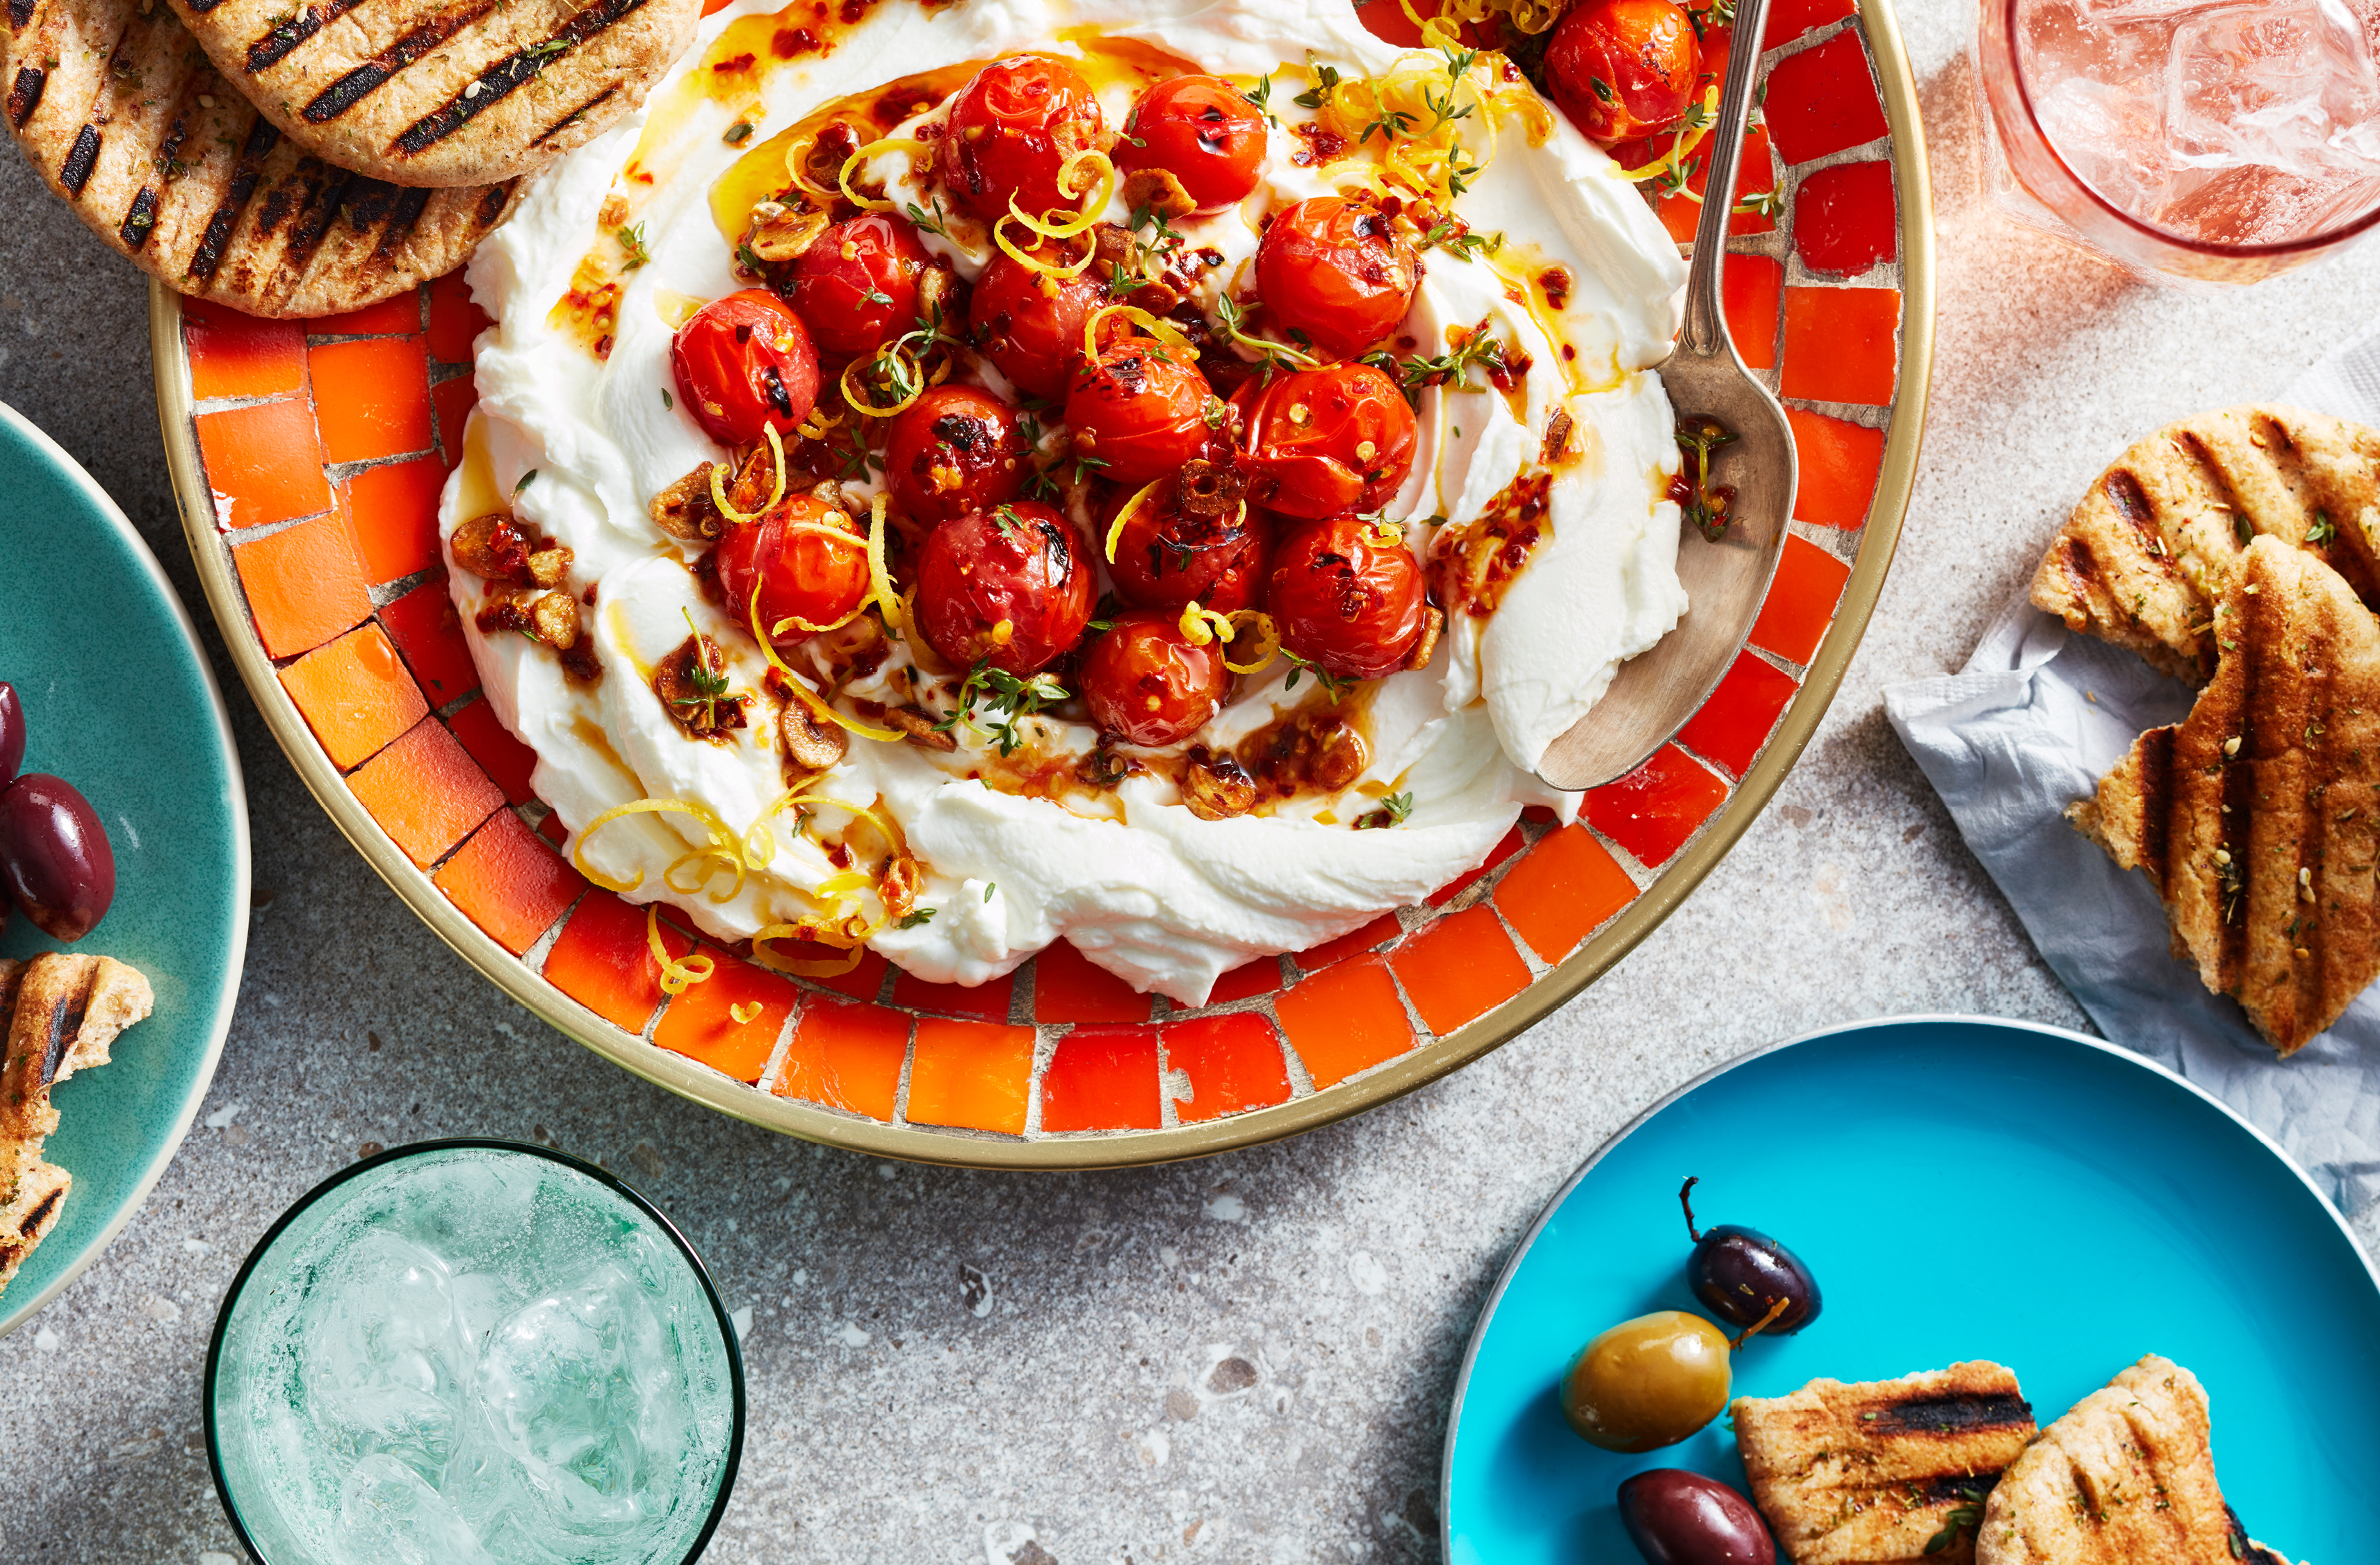 Charred axiany tomatoes nestled into a bed of plain skyr yogurt